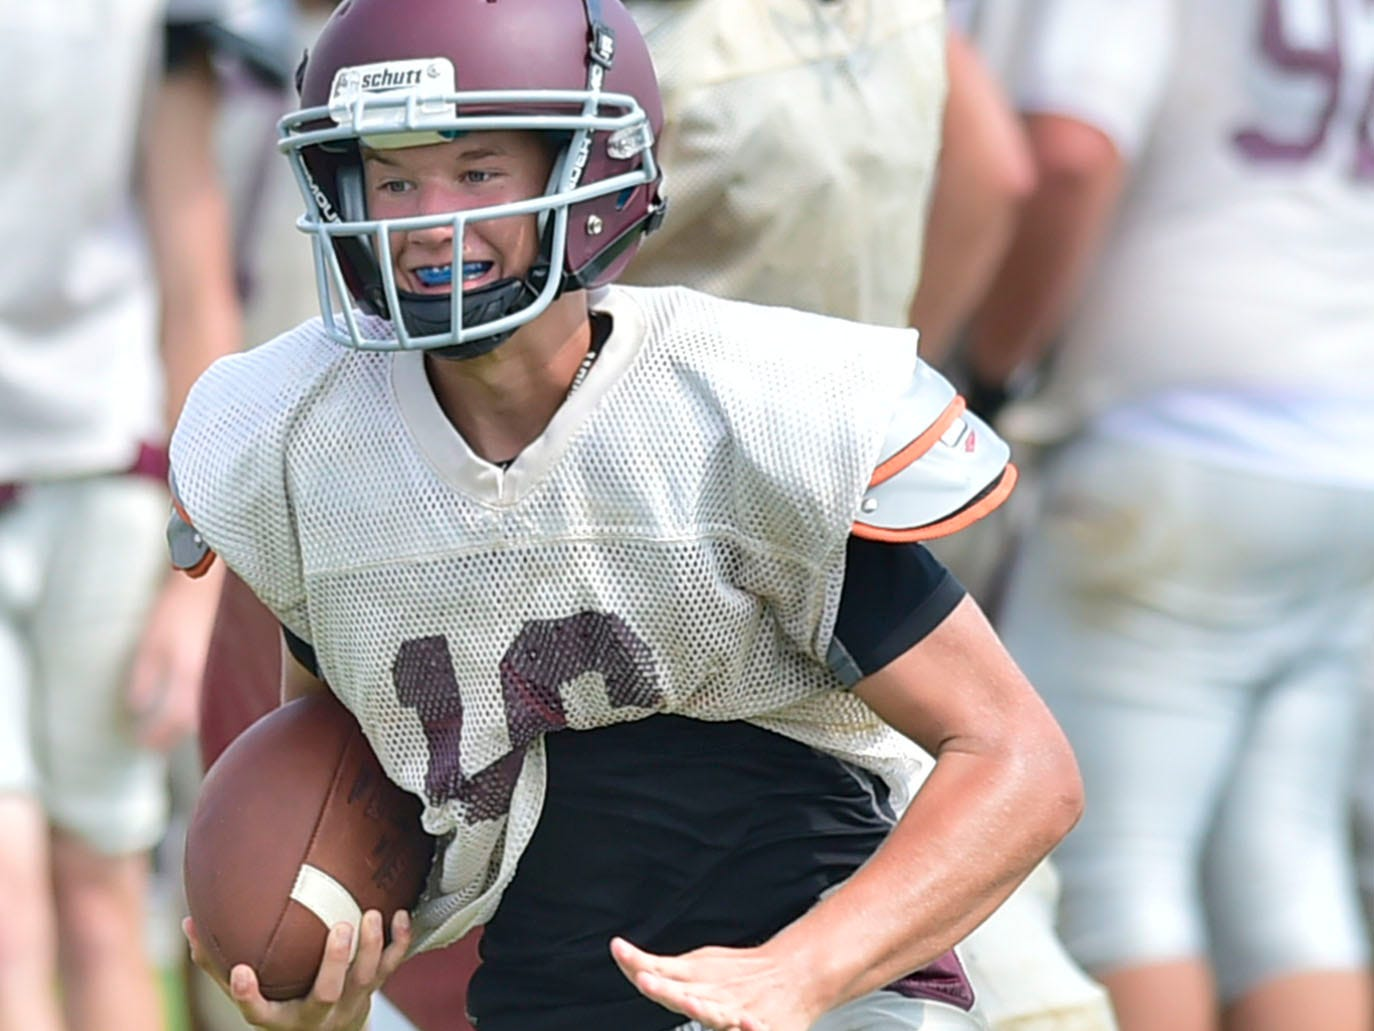 Zach Manning tucks and runs   for the Greyhounds. Shippensburg High School football players practice on Thursday, August 9, 2018.